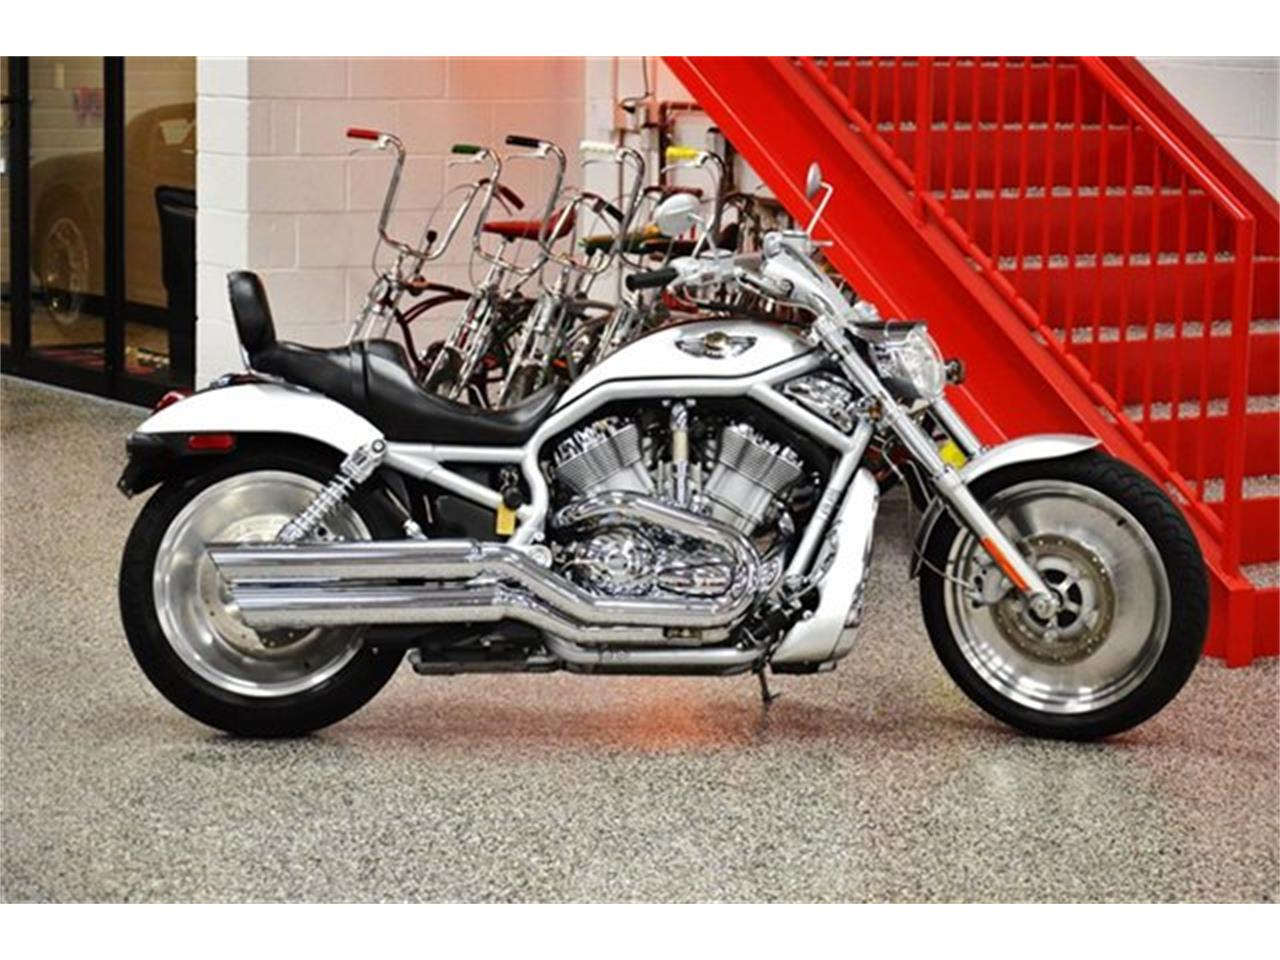 2003 Harley-Davidson VRSC for sale in Plainfield, IL – photo 25